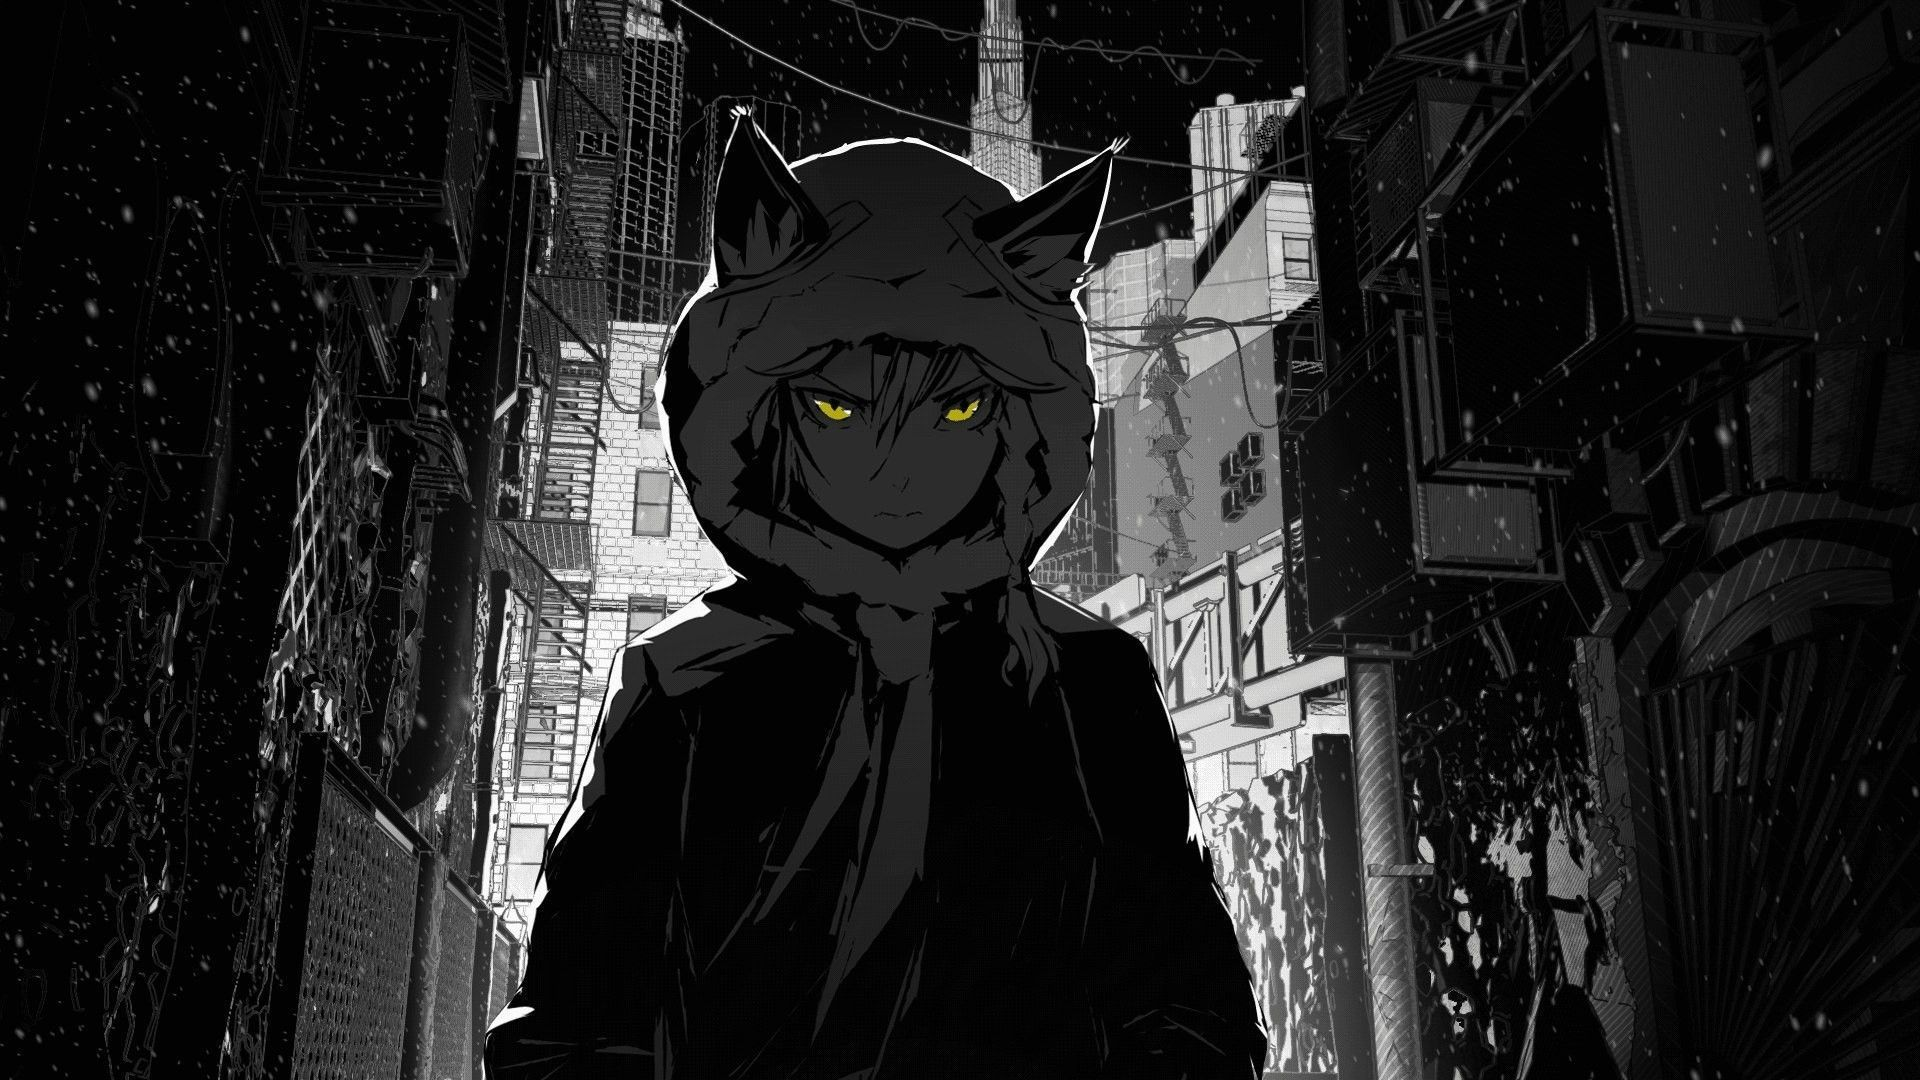 Black and White Anime Wallpaper Design Ideas For computer